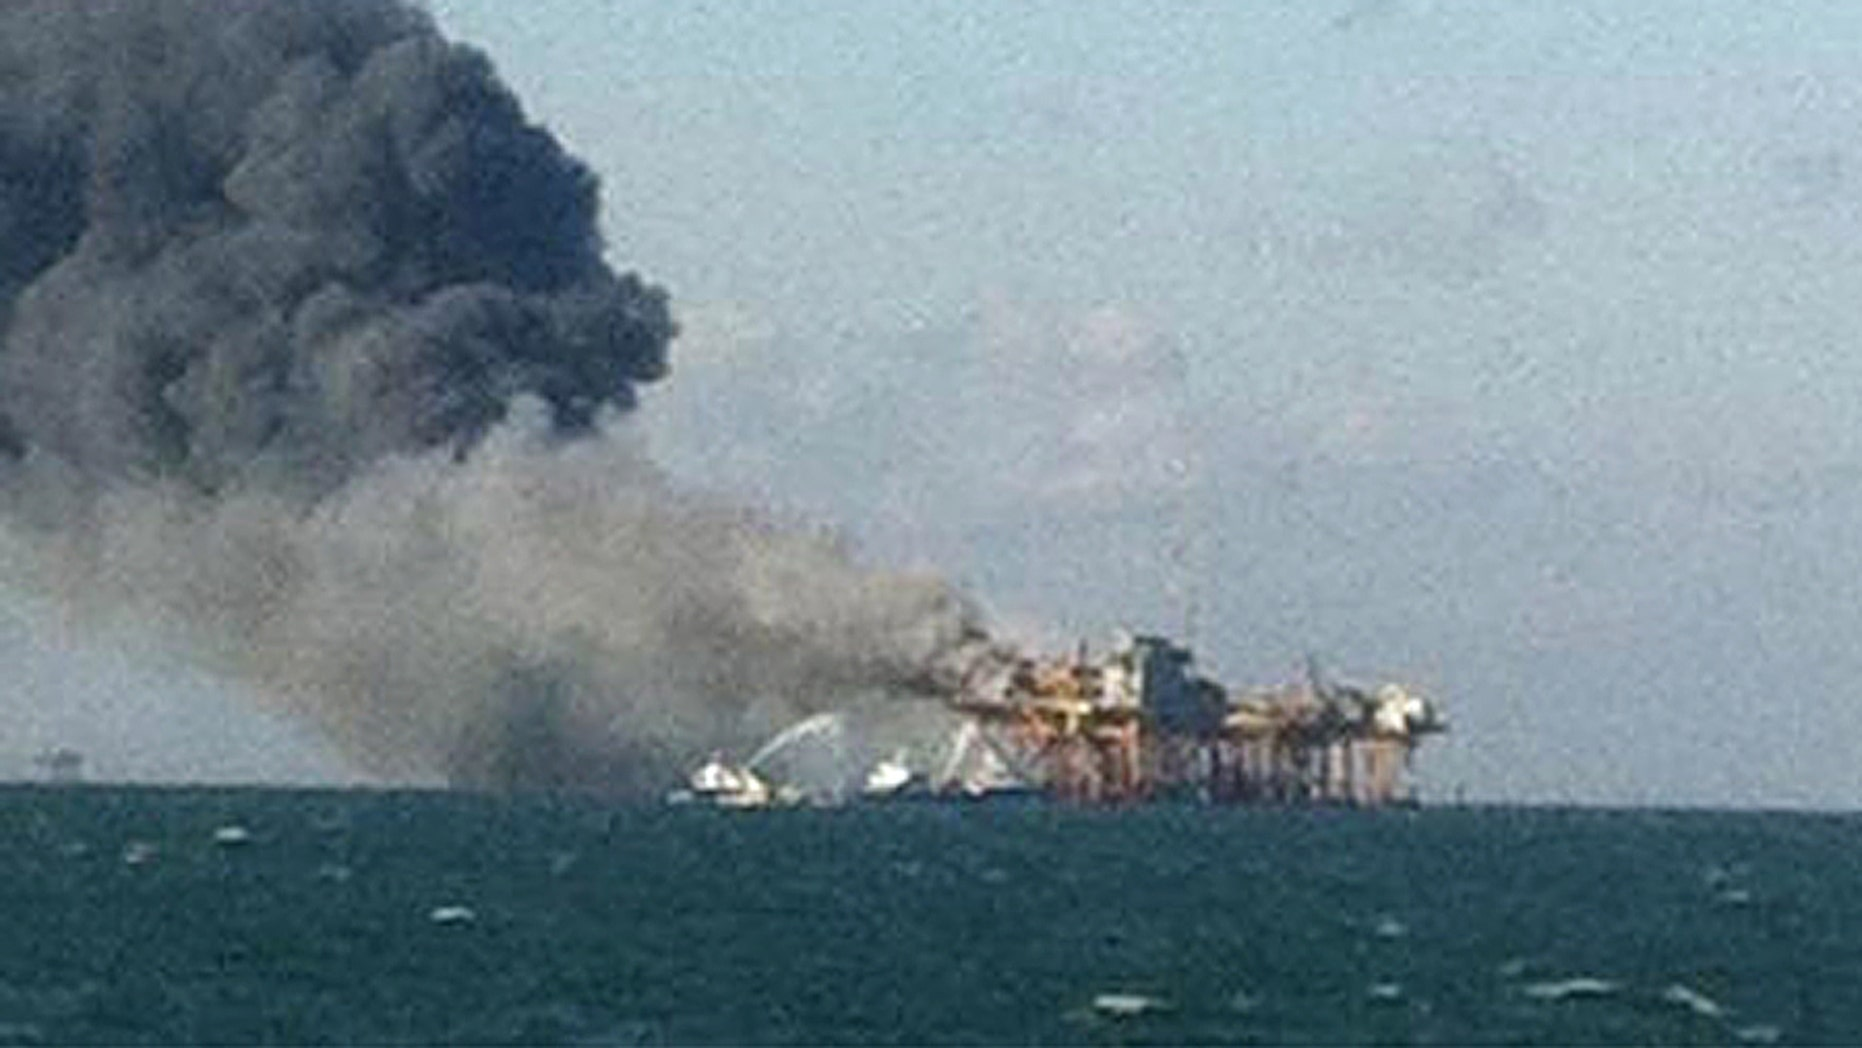 Nov. 16, 2012: In this image released by a oil field worker and obtained by the Associated Press, a fire burns on a Gulf oil platform after an explosion on the rig, in the Gulf of Mexico off the Louisiana coast.